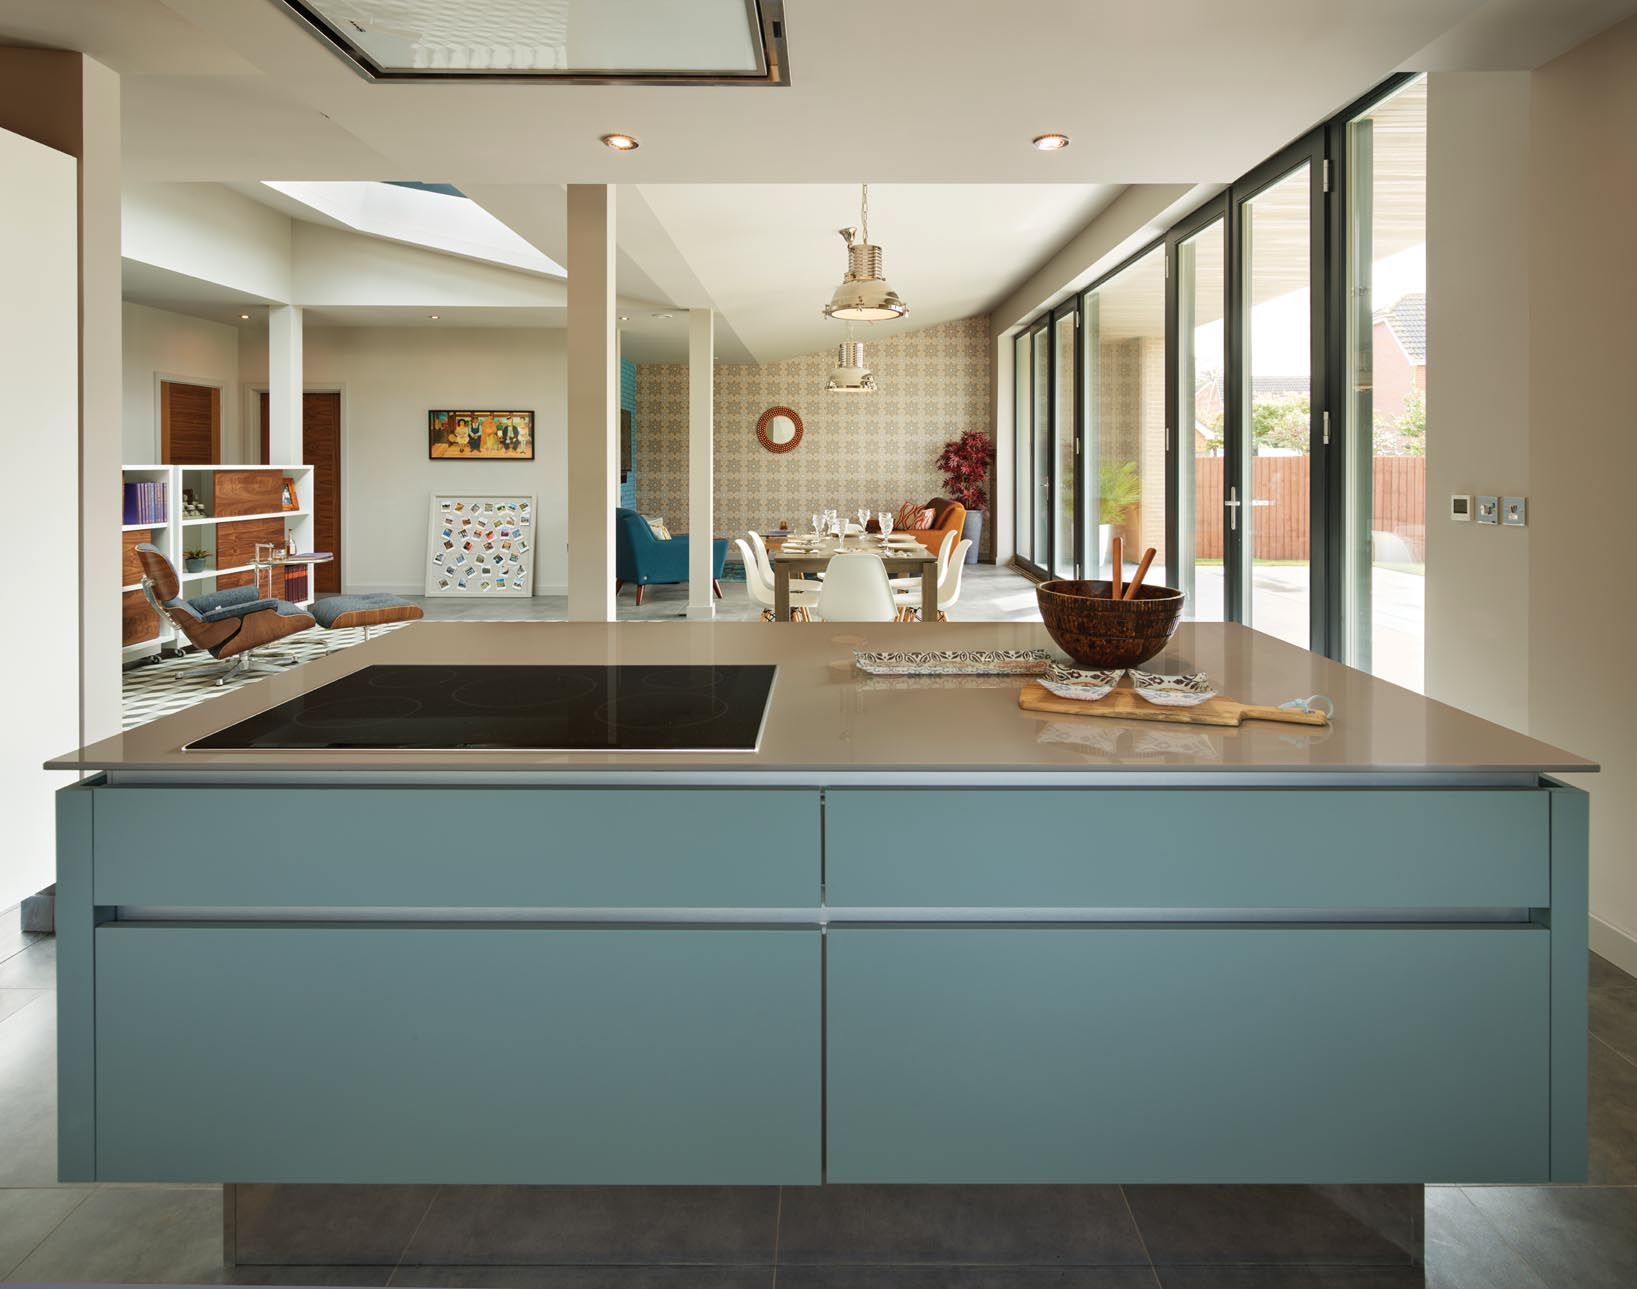 designer kitchens for less the ultimate guide to kitchen worktops designer kitchens 235